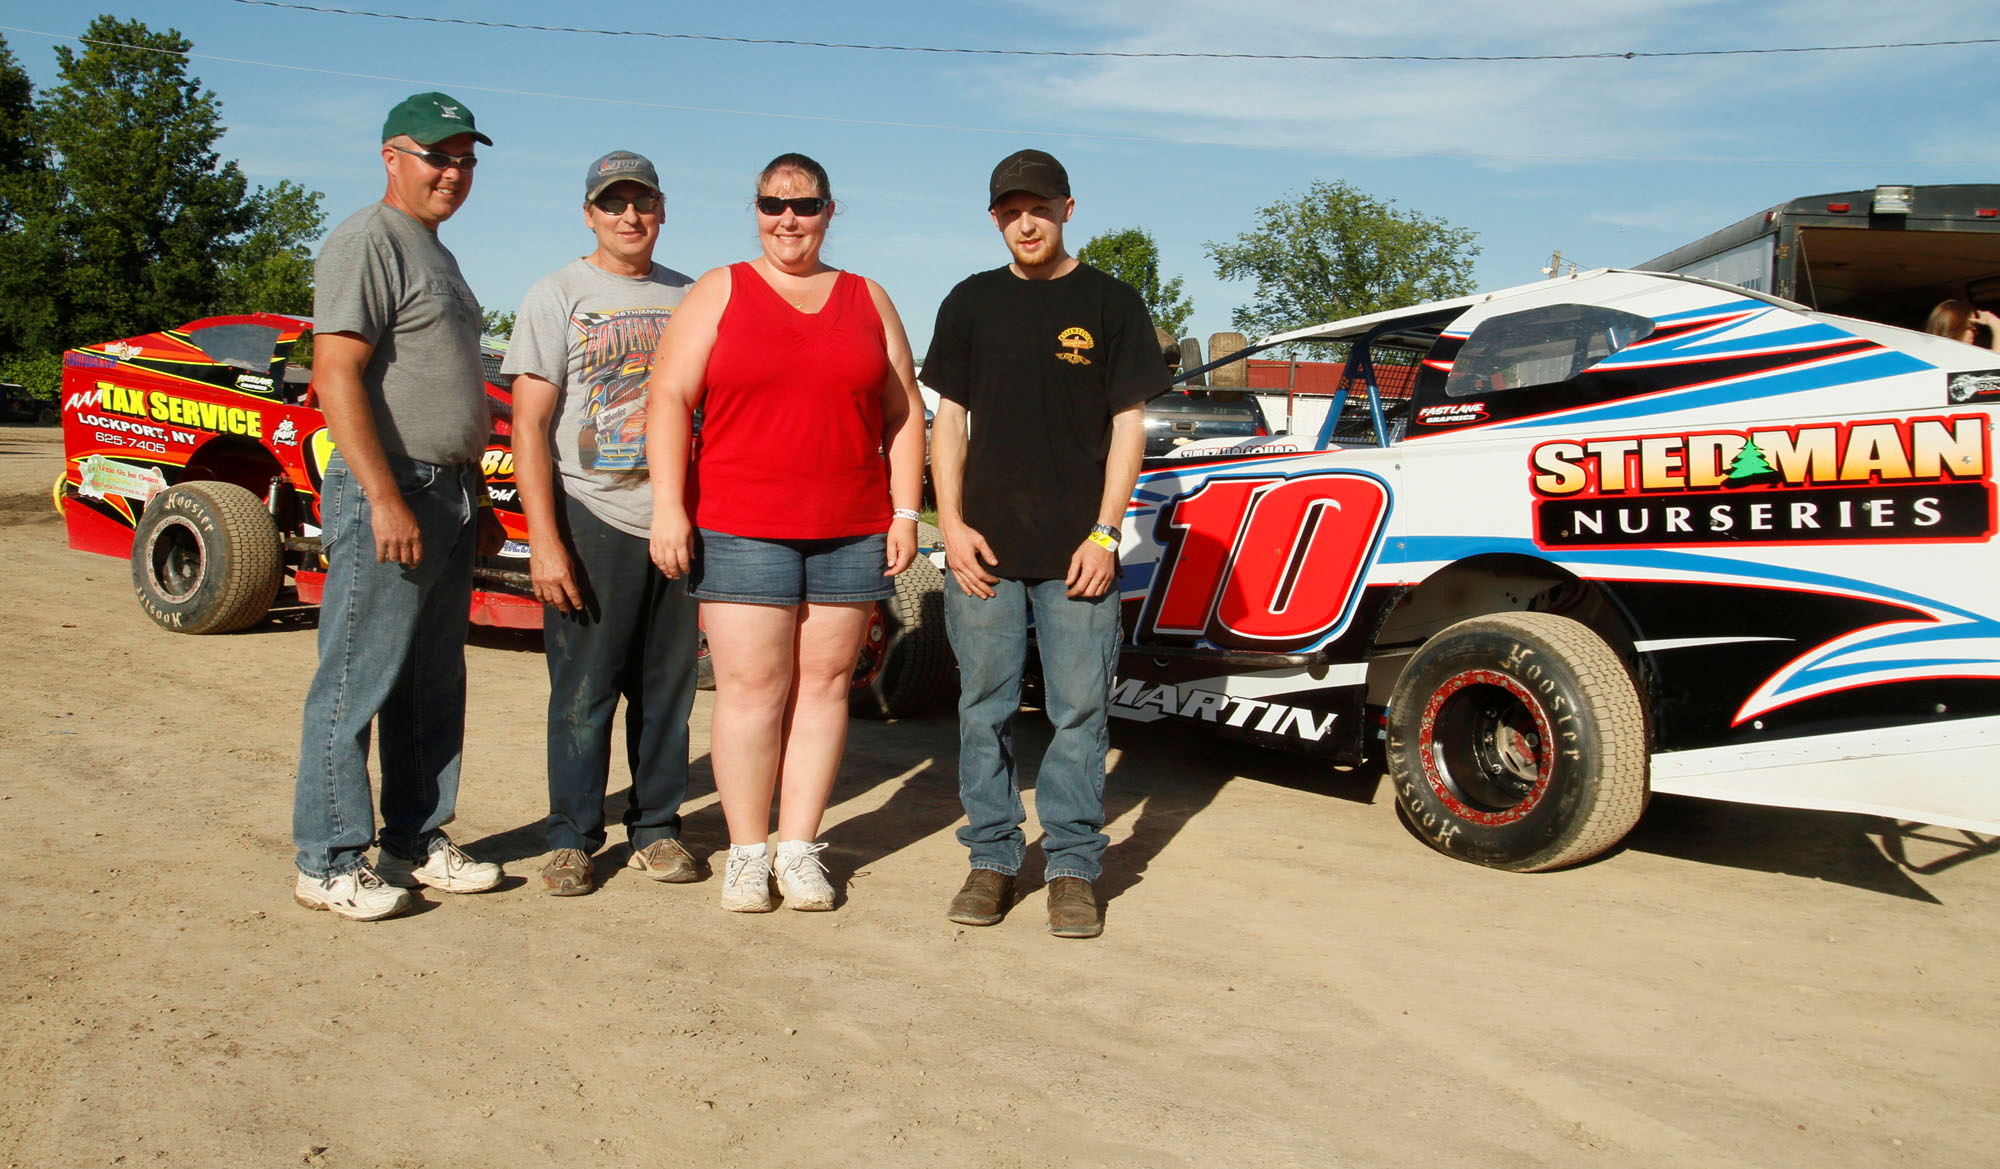 In this 2010 photo at Ransomville, Jennifer Martin is pictured with fellow then-DIRT Sportsman team members (left to right) Mark Potter, Mike Martin (her husband) and Mike's son Brett Martin. (John Hickey/Buffalo News file photo)